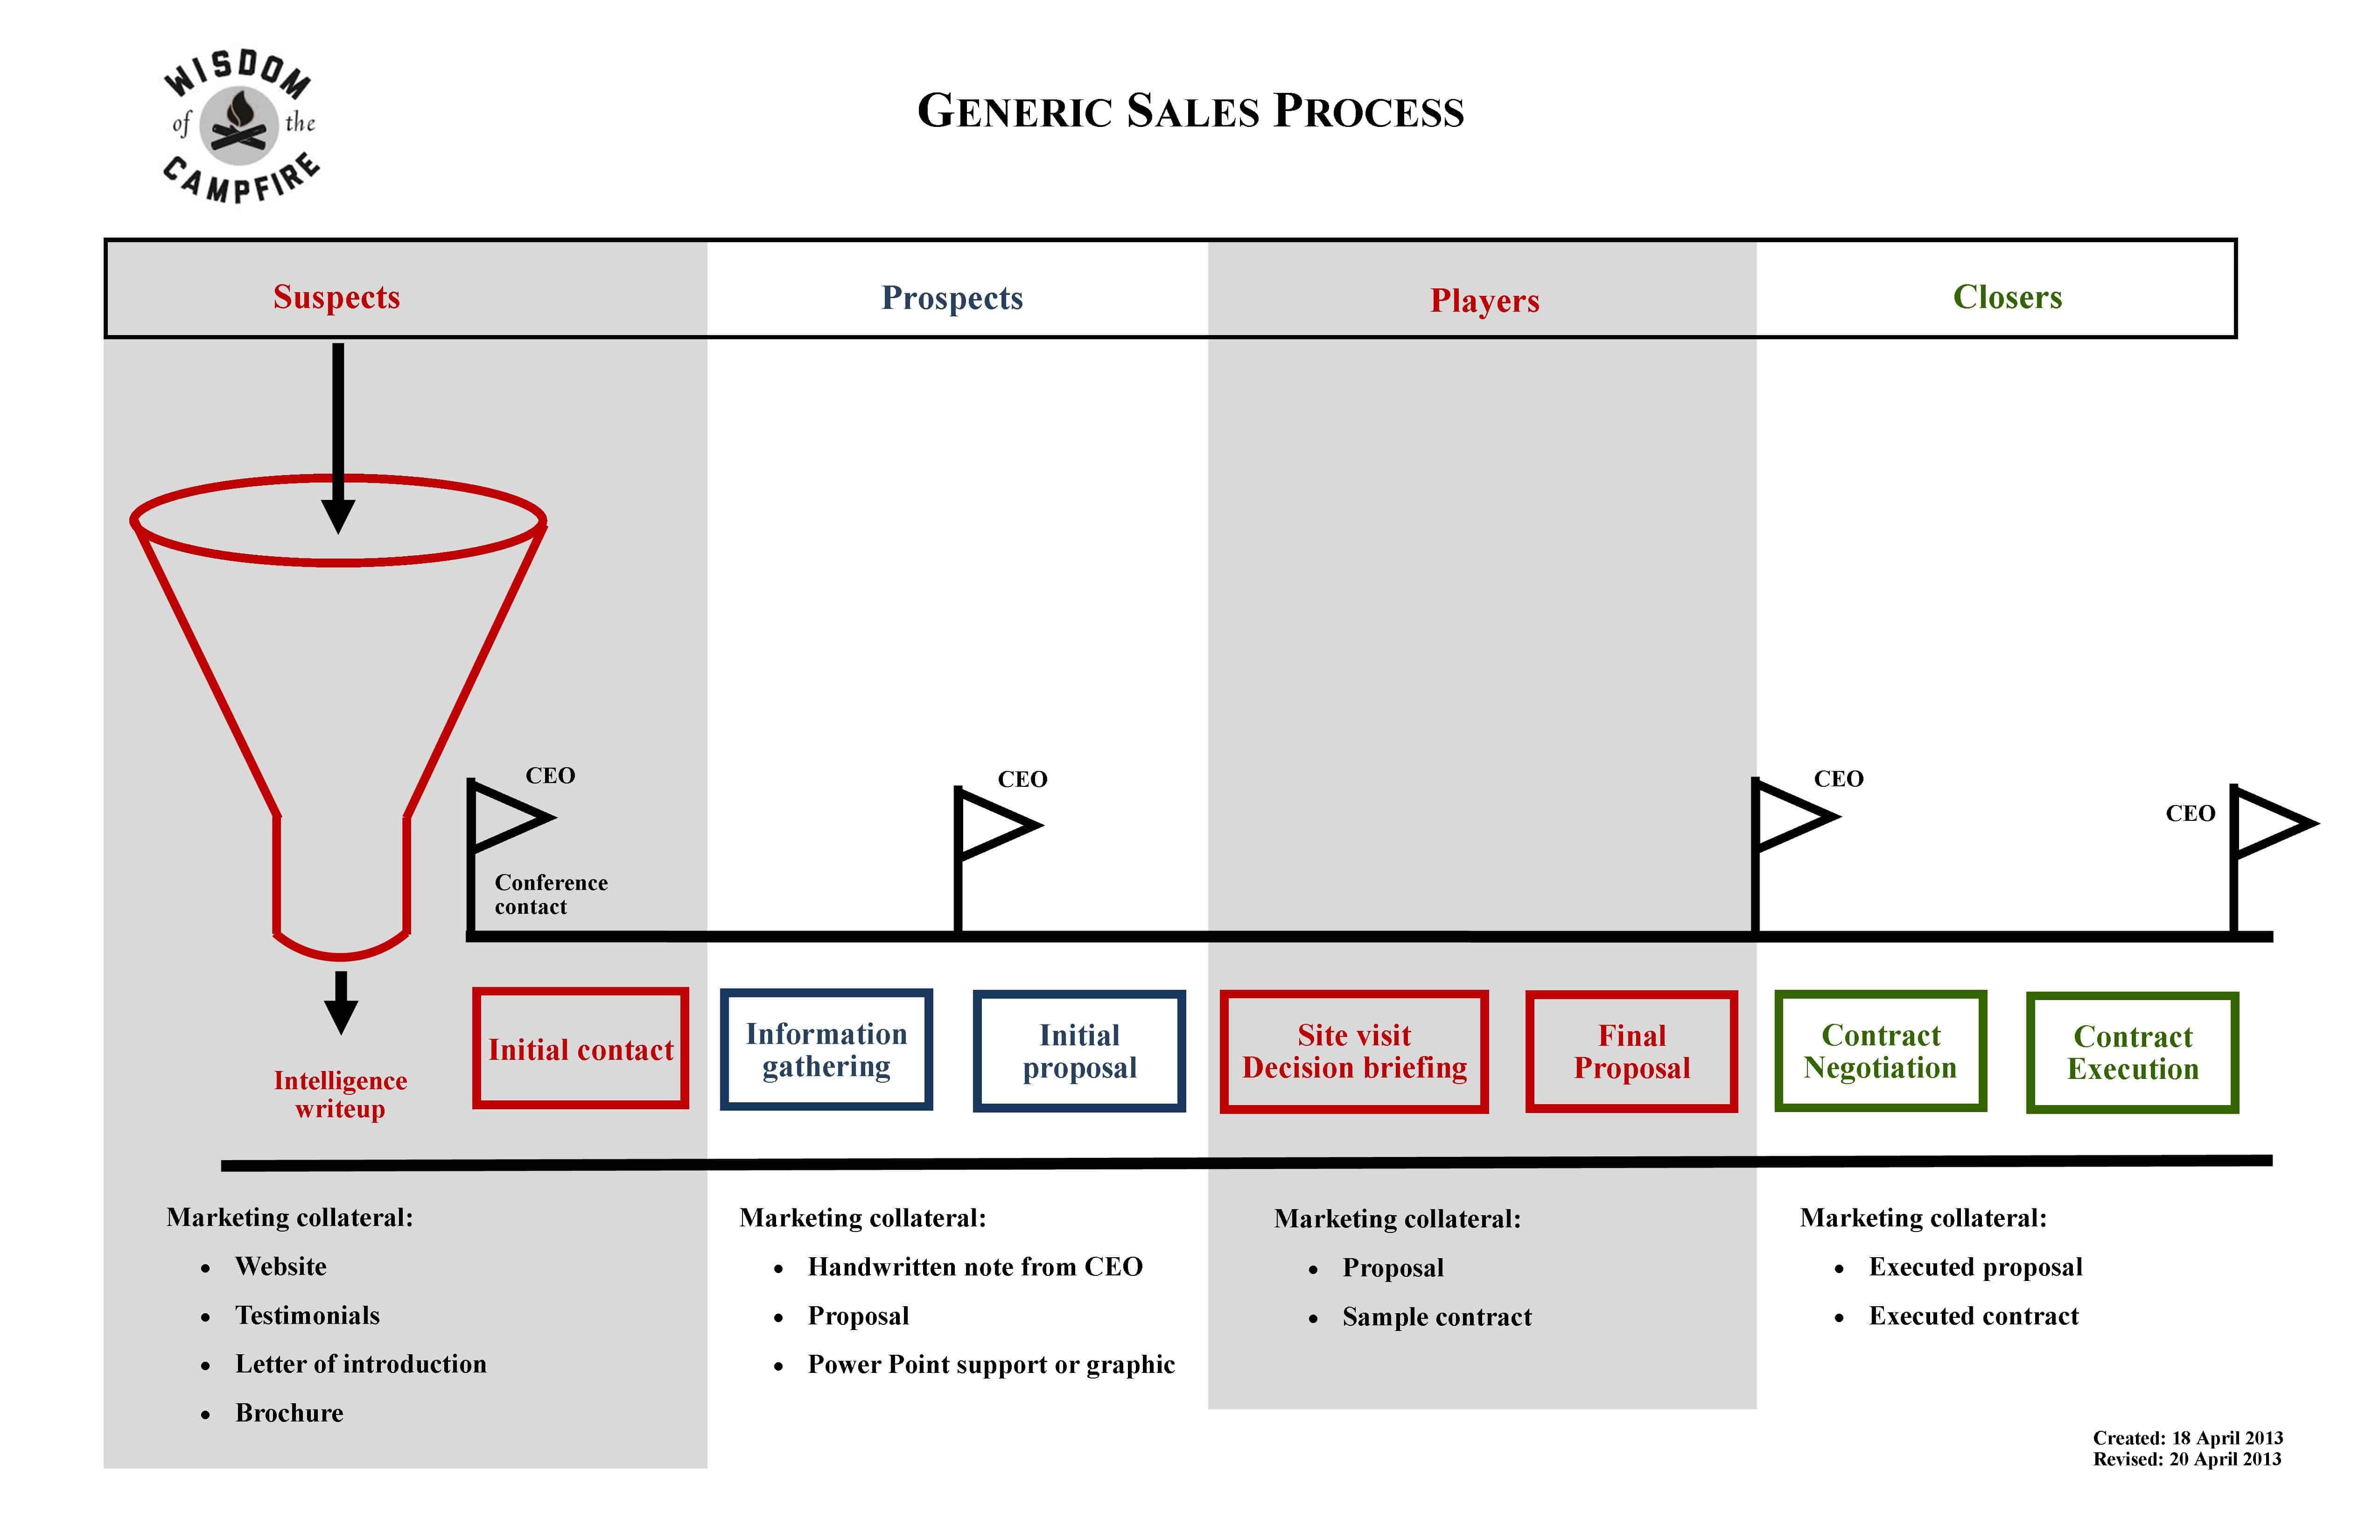 Sales Process Graphic - The Musings of the Big Red Car